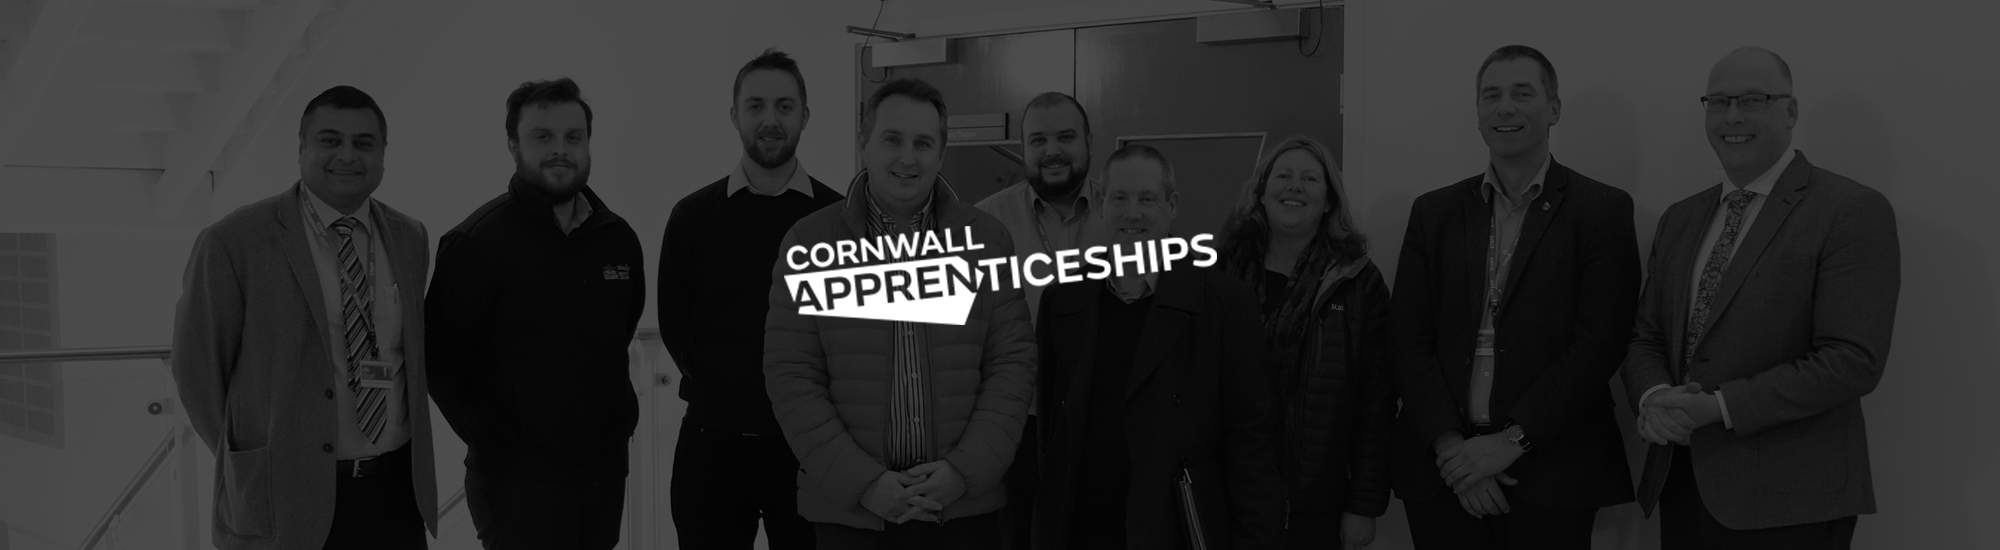 Cornwall Apprenticeships